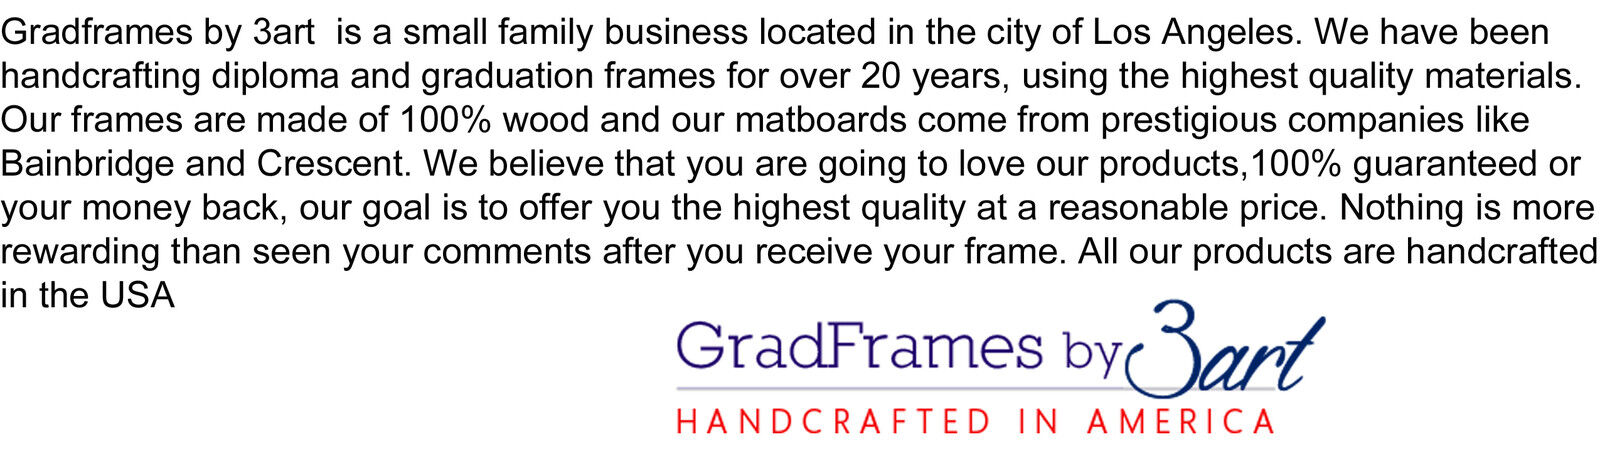 gradframes by 3art